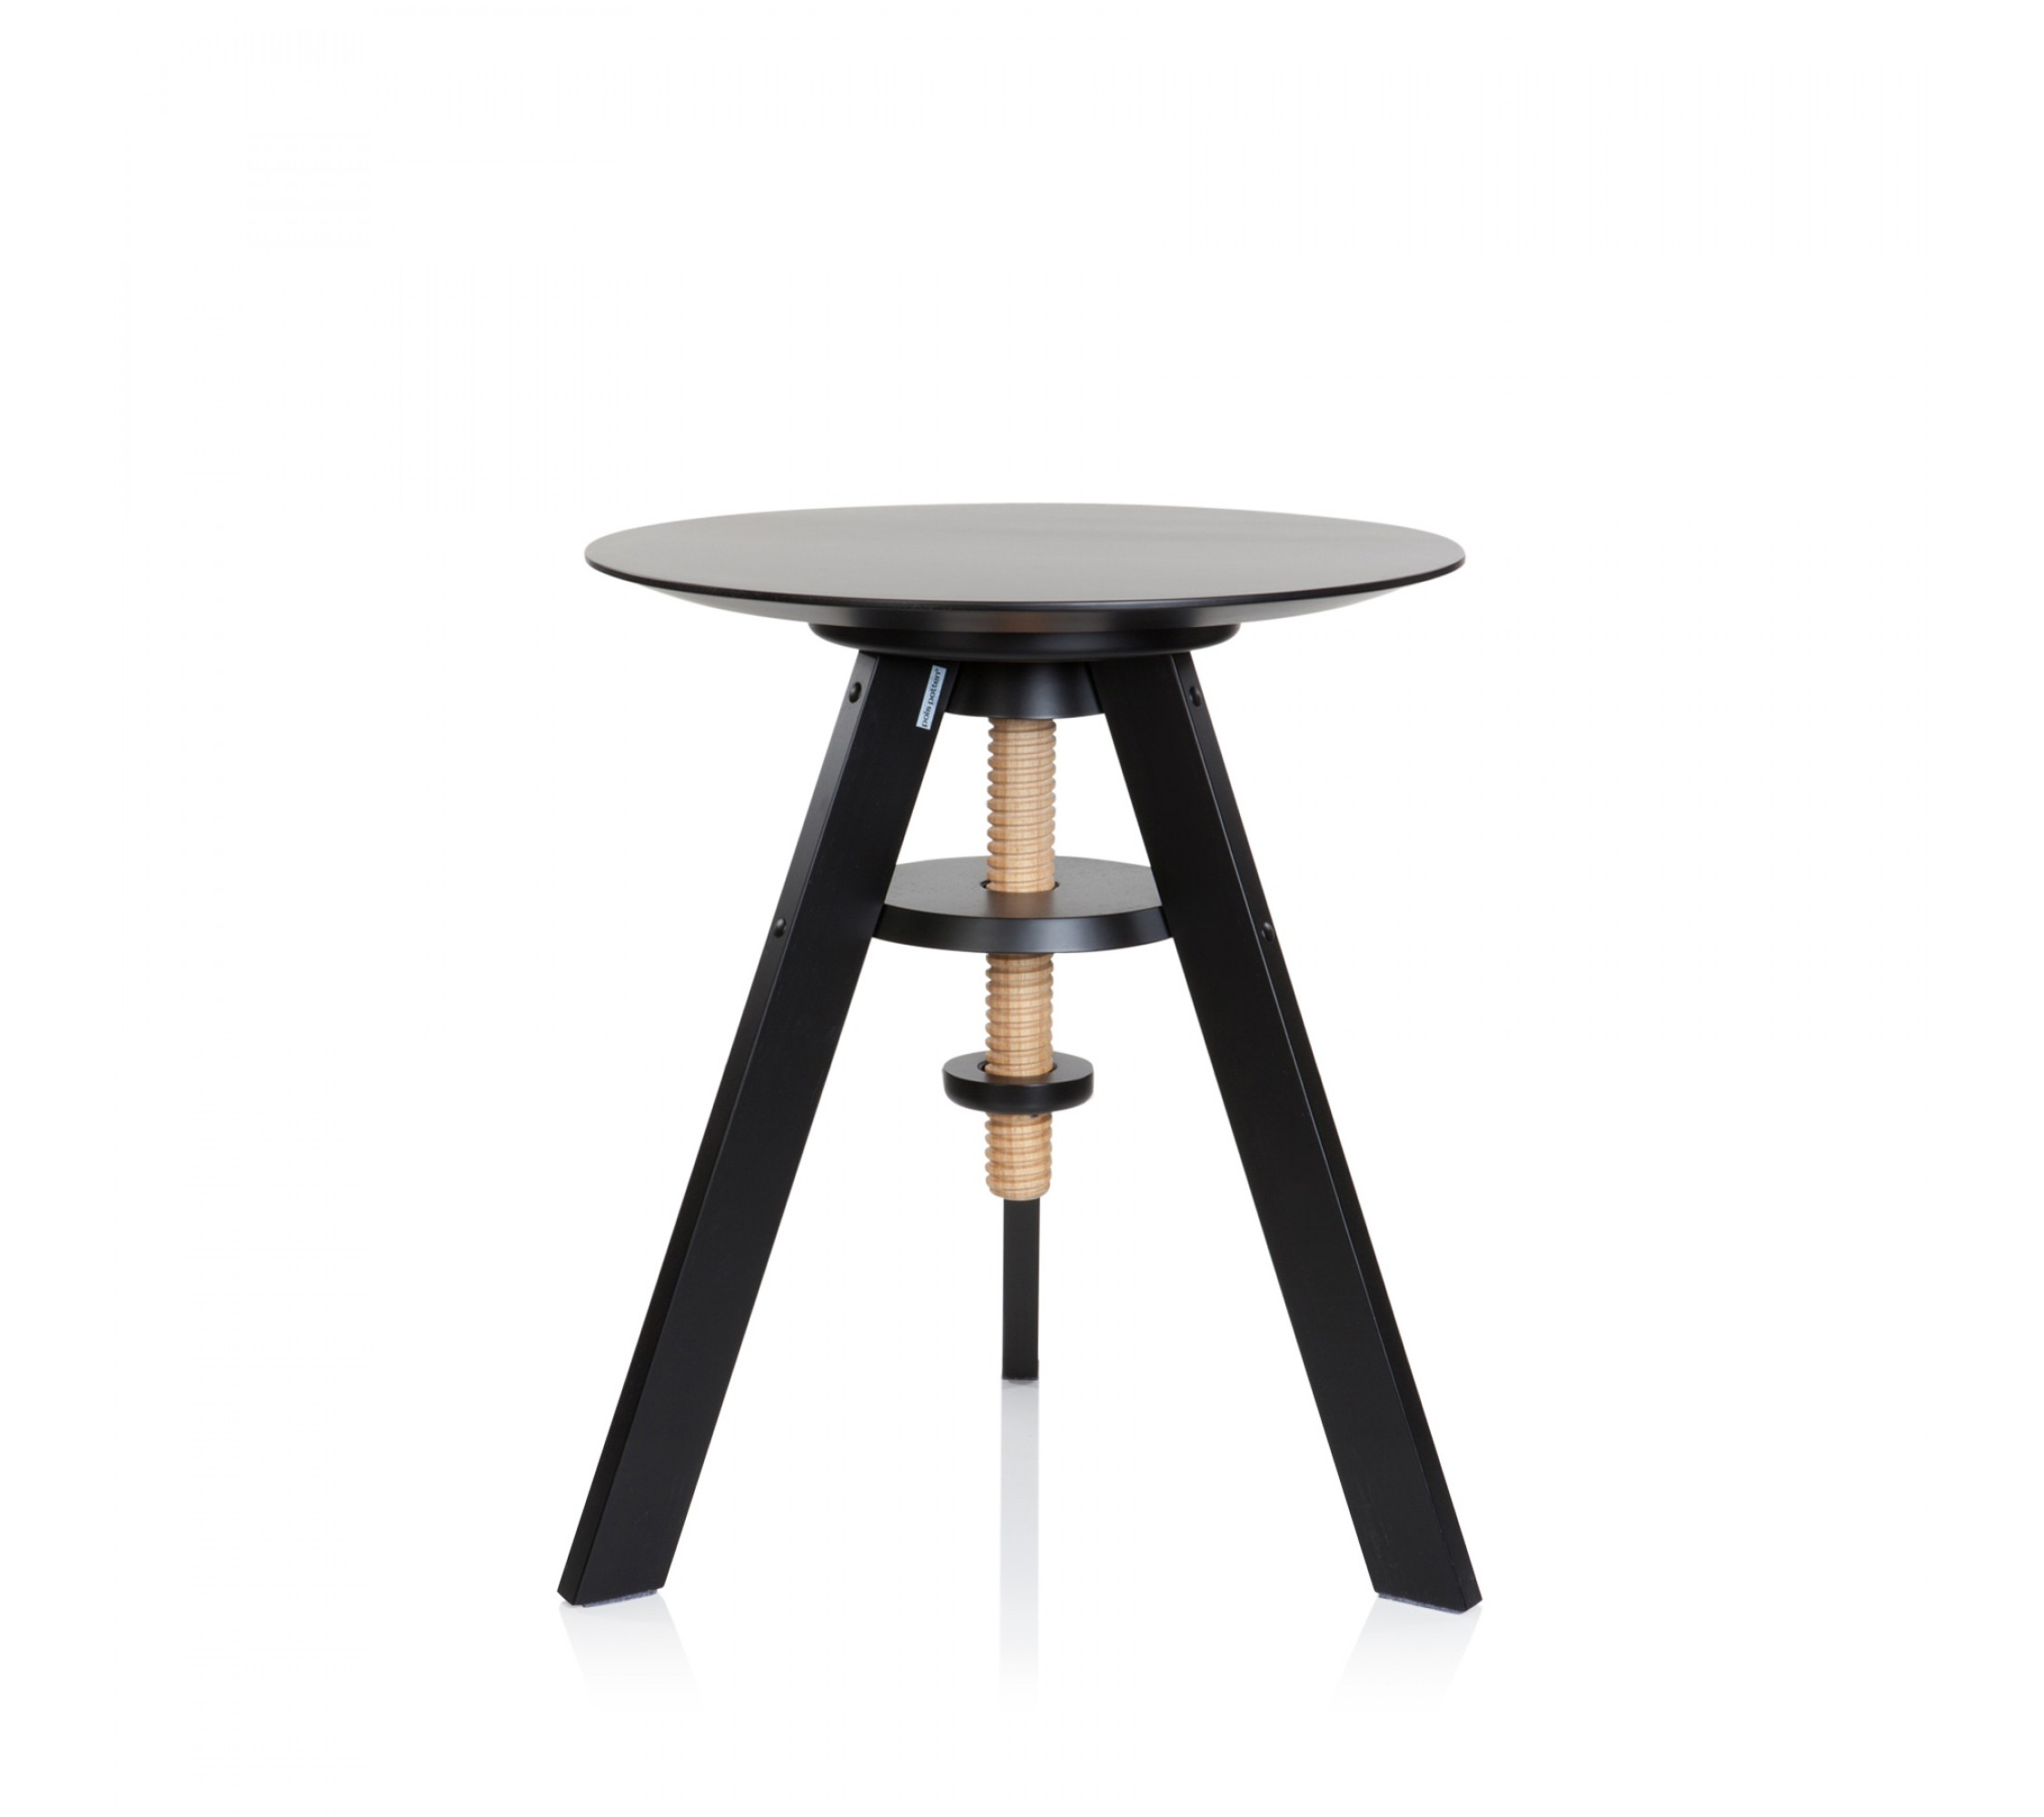 Beistelltisch Massivholz - Pianola Table black